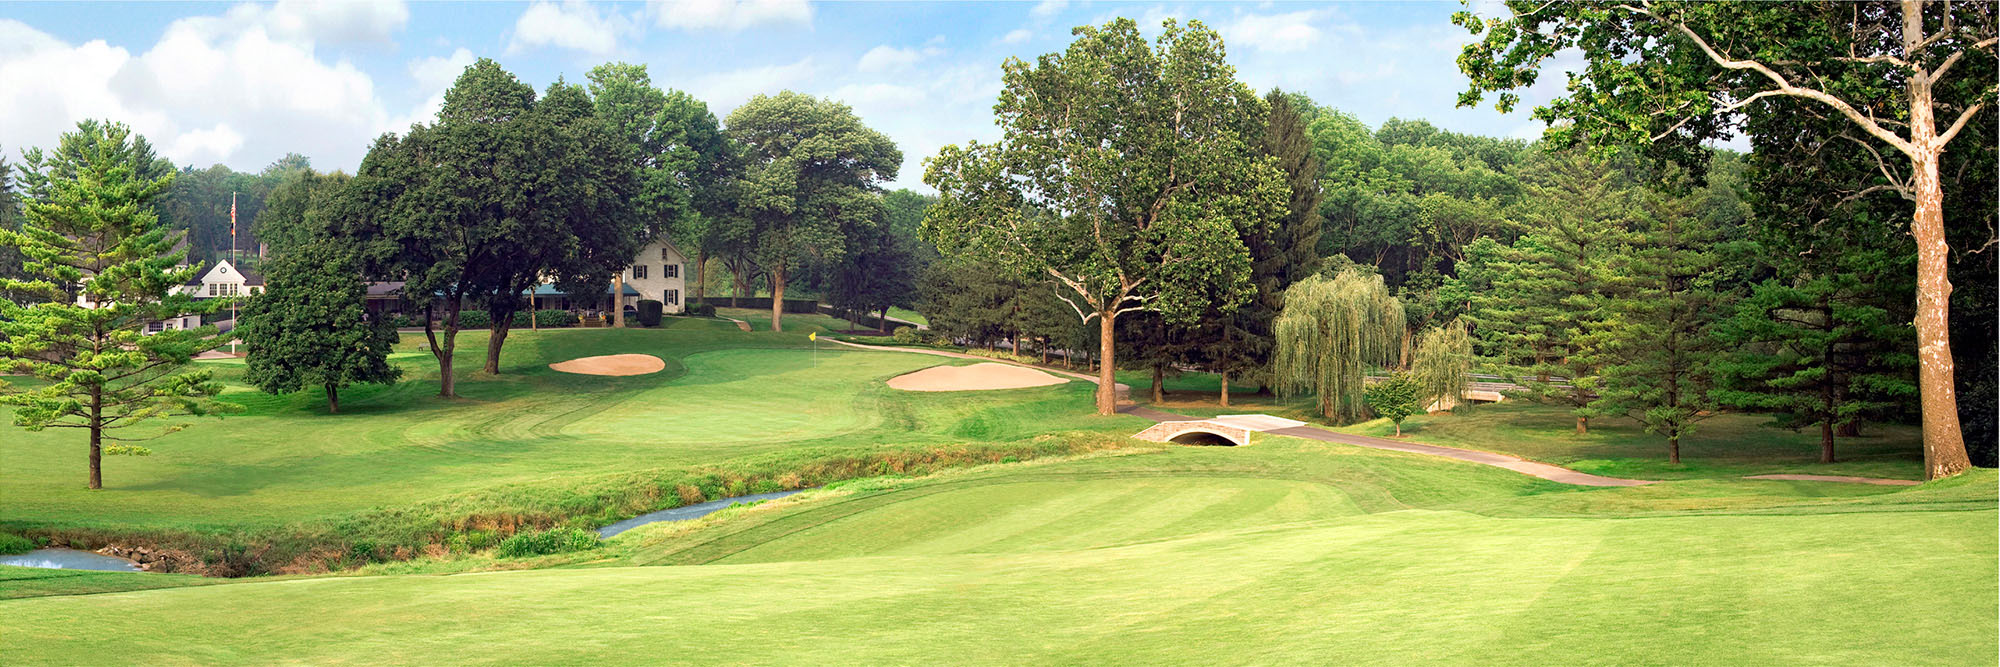 Golf Course Image - Philadelphia Cricket Club No. 18